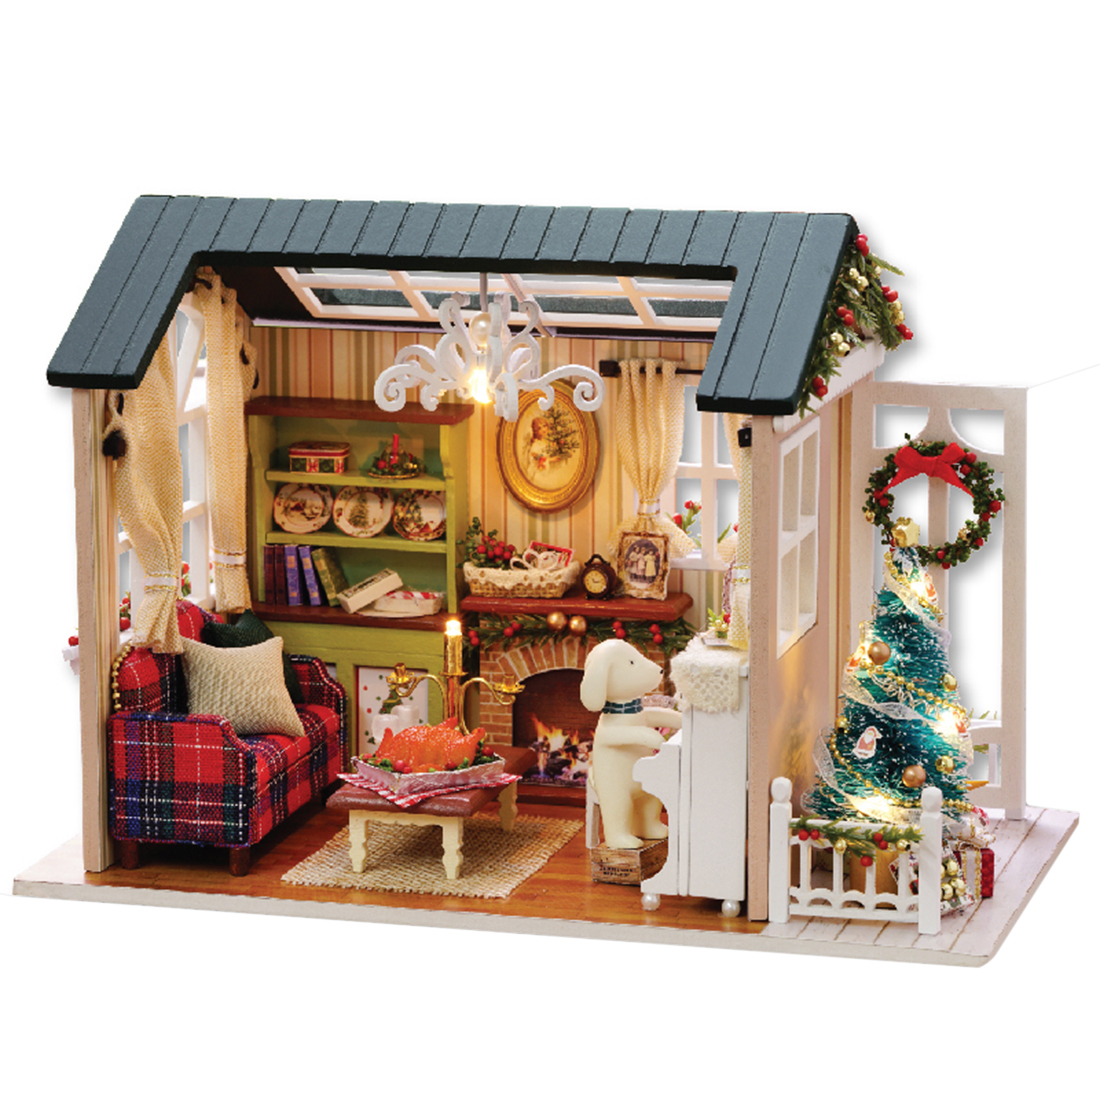 DIY Interesting Dollhouse Holiday Days 3D Assembly DIY Household Creative House Kit